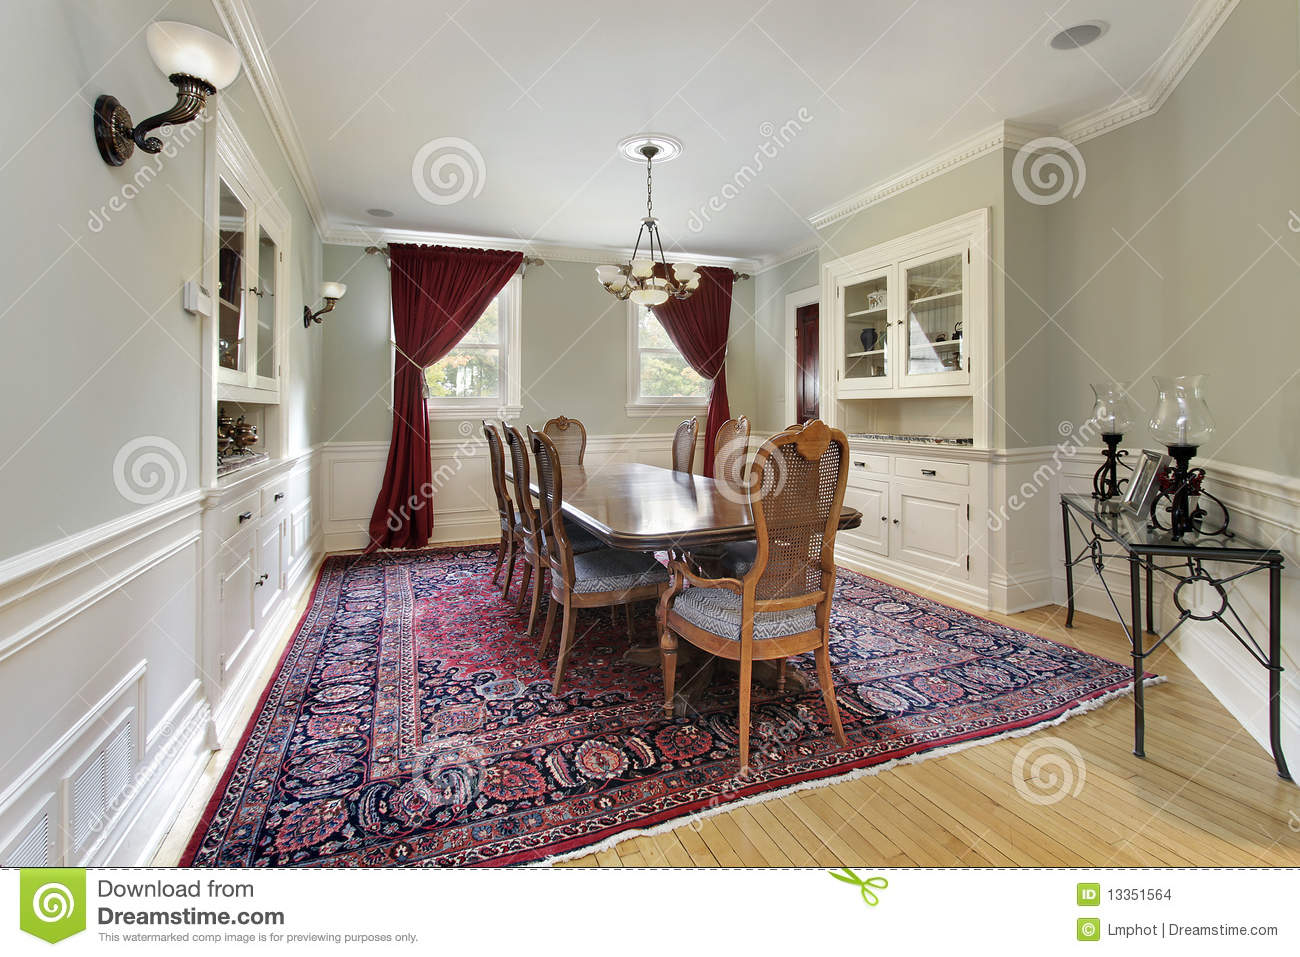 dining room with built ins stock images - Dining Room Built Ins